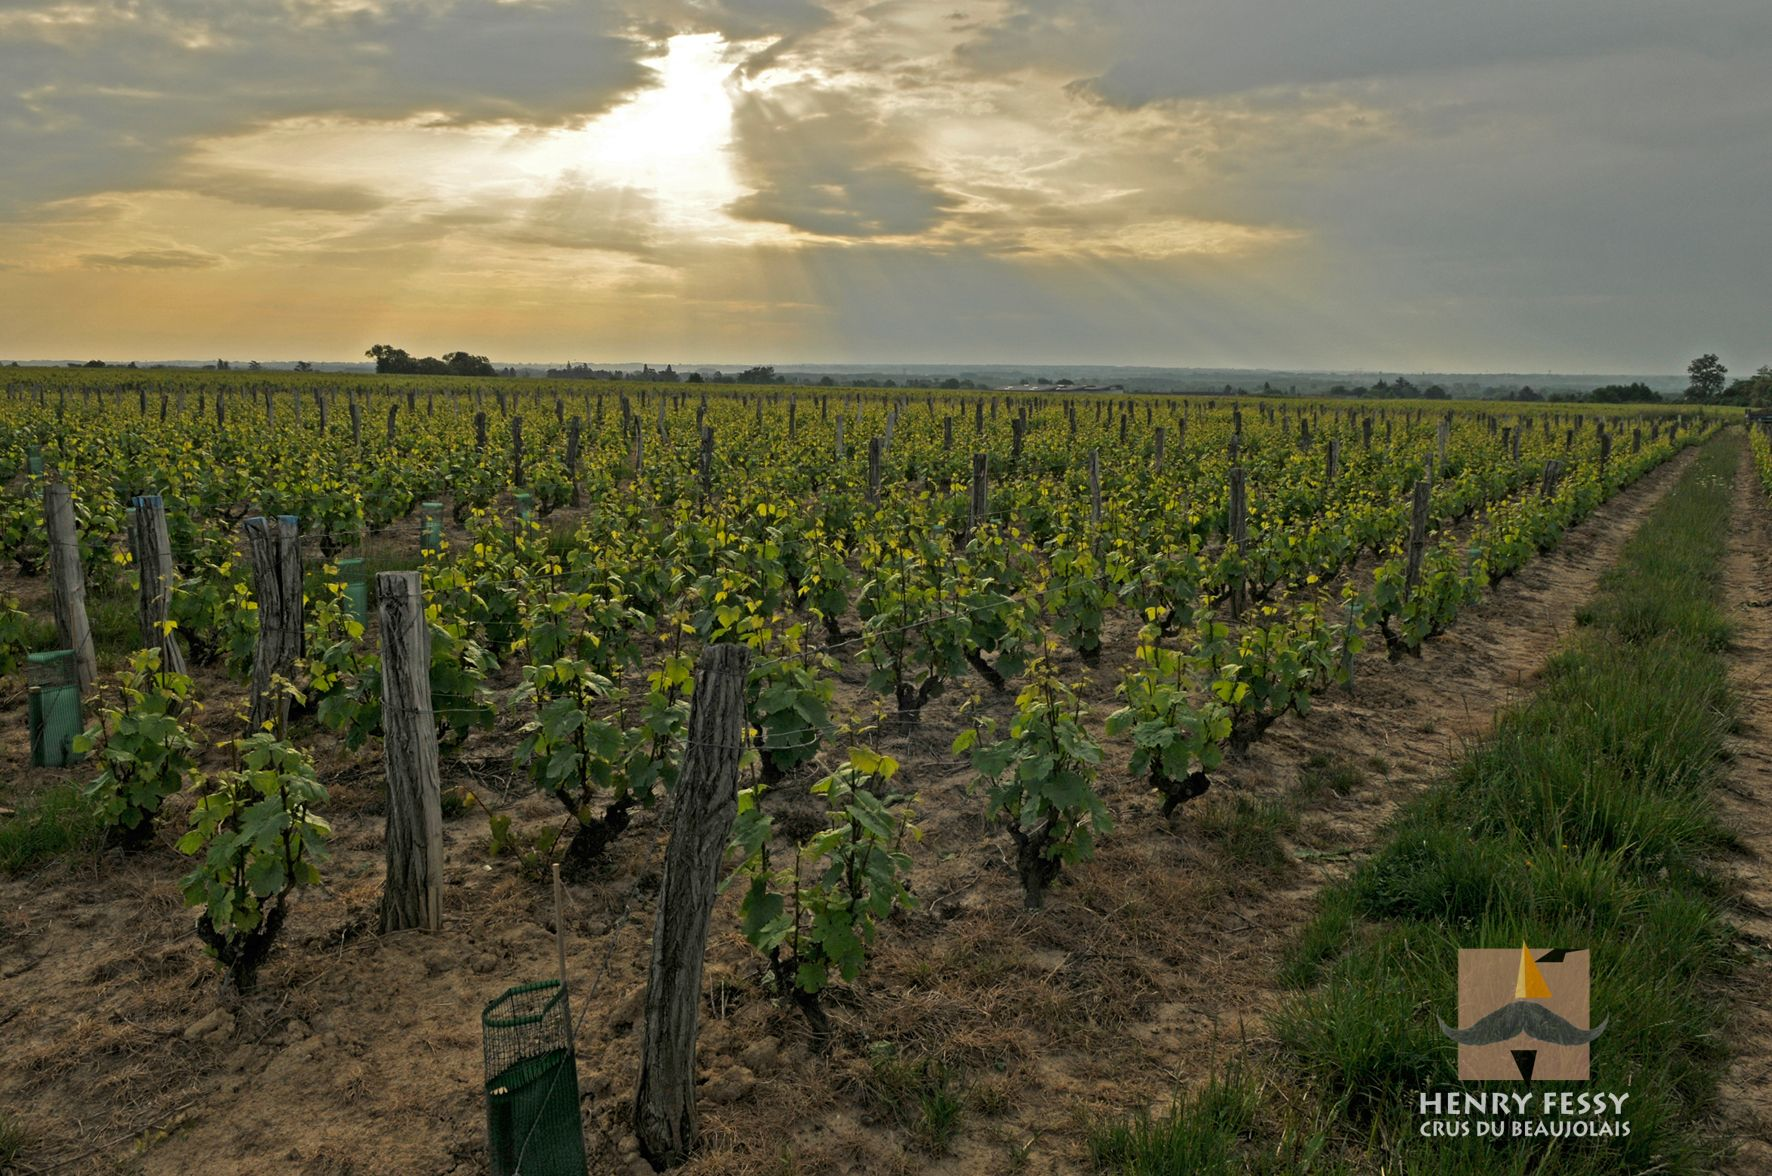 Brouilly, one of the vineyards of winemaker Henry Fessy